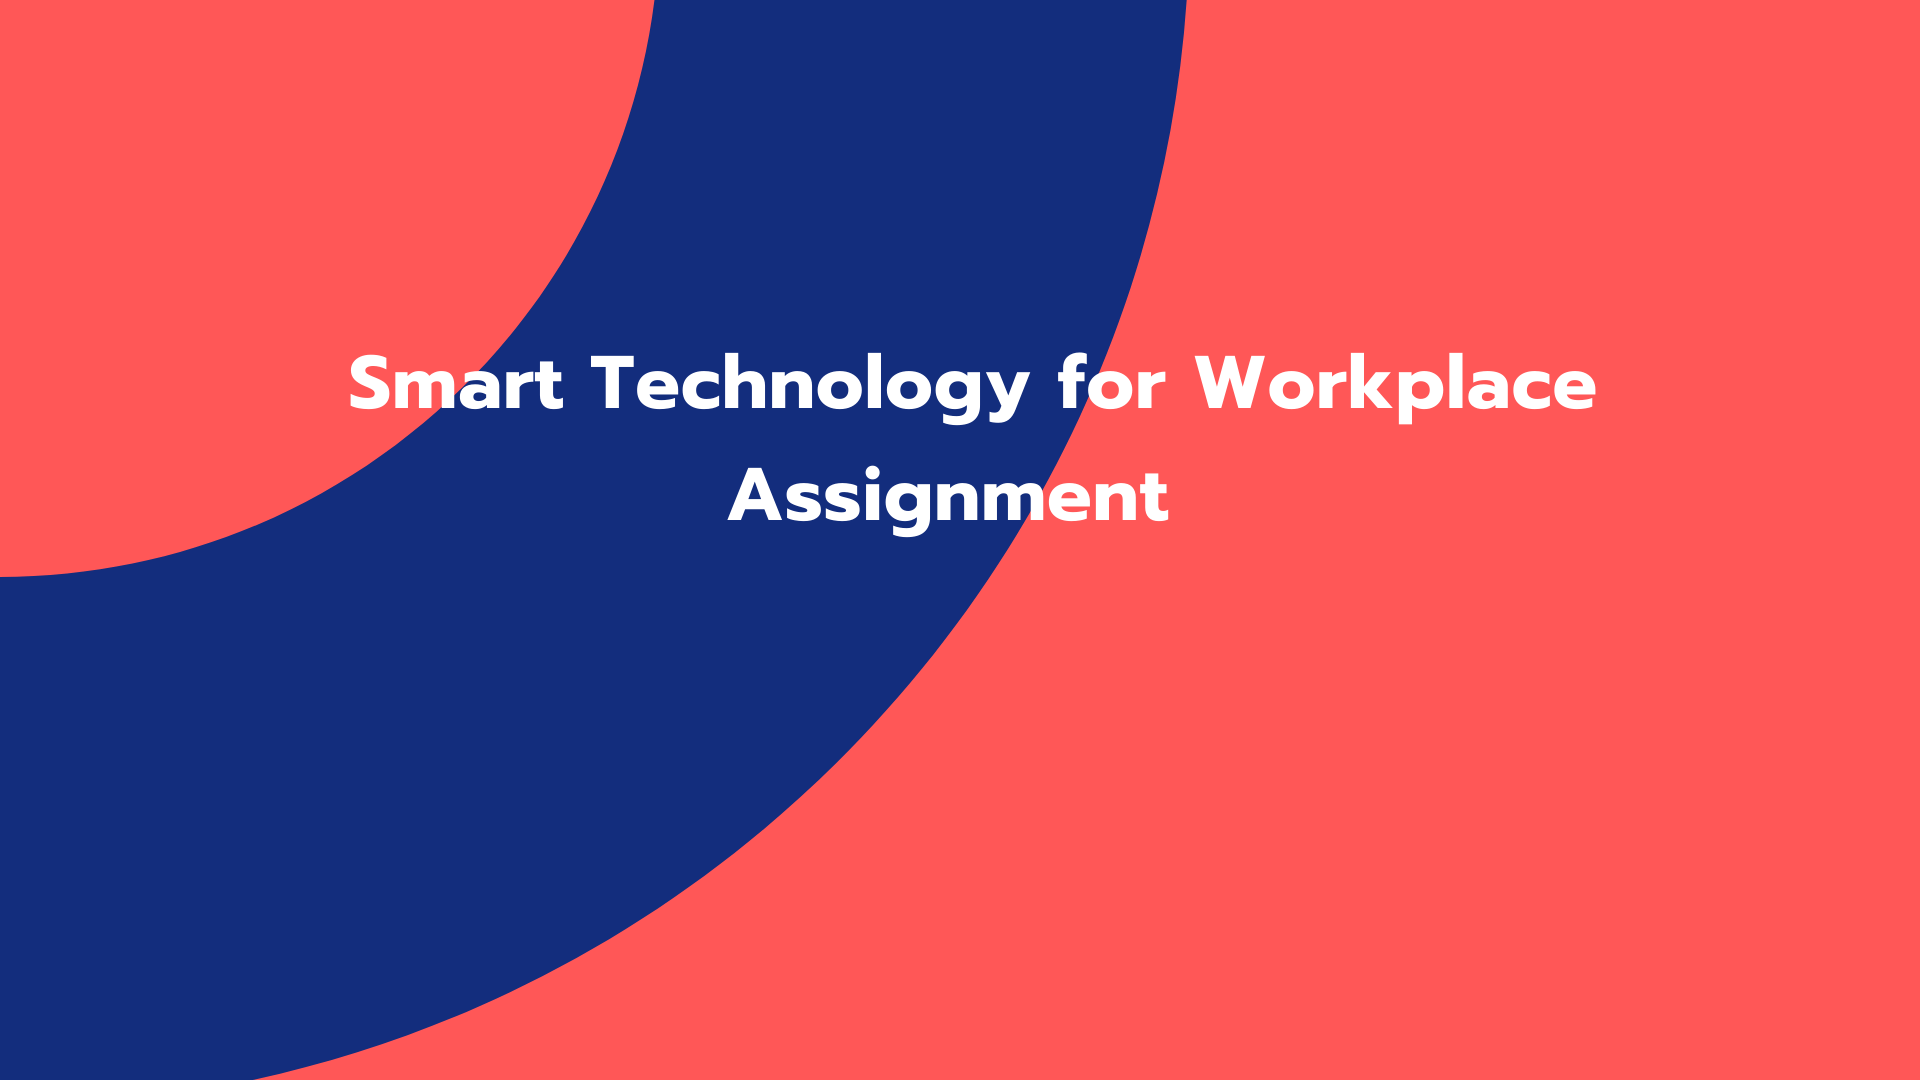 Smart Technology for Workplace Assignment